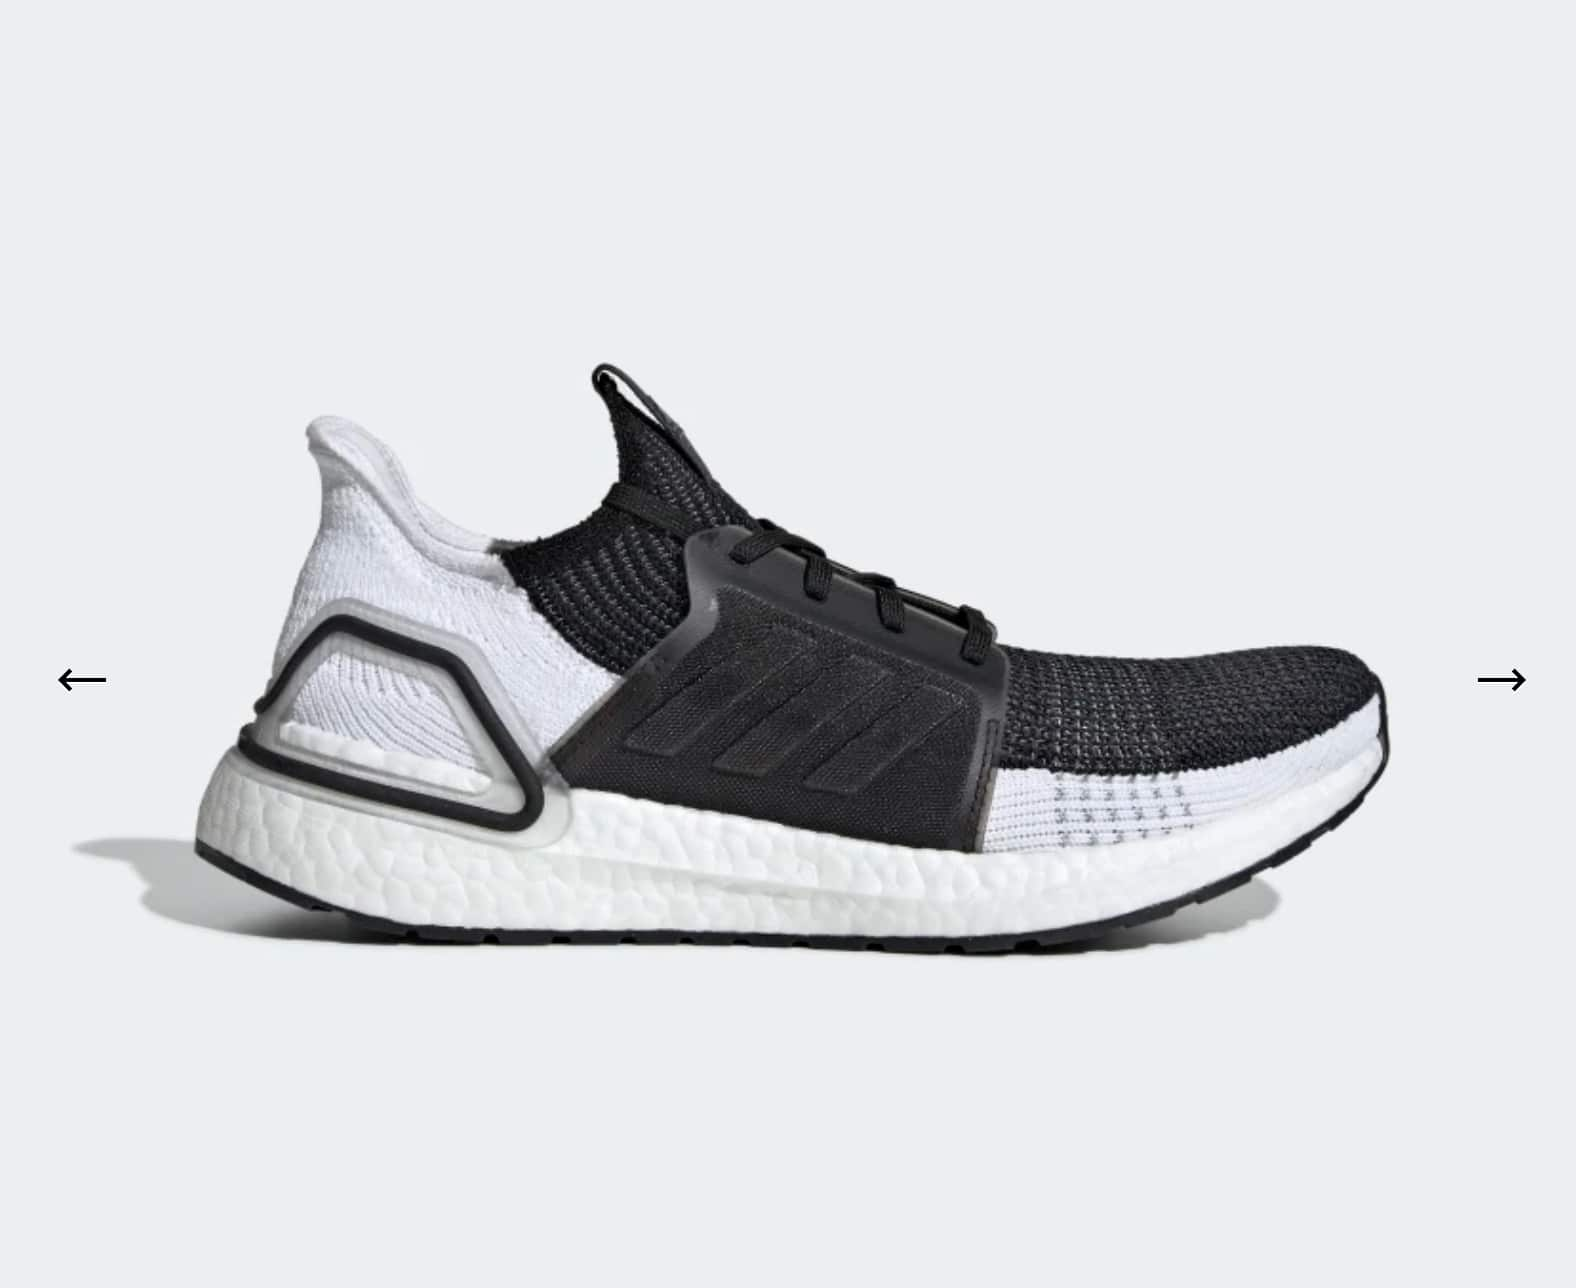 Adidas [CANADA] Men's / Women's Ultraboost Running Shoes (various colors) $87.50 CAD